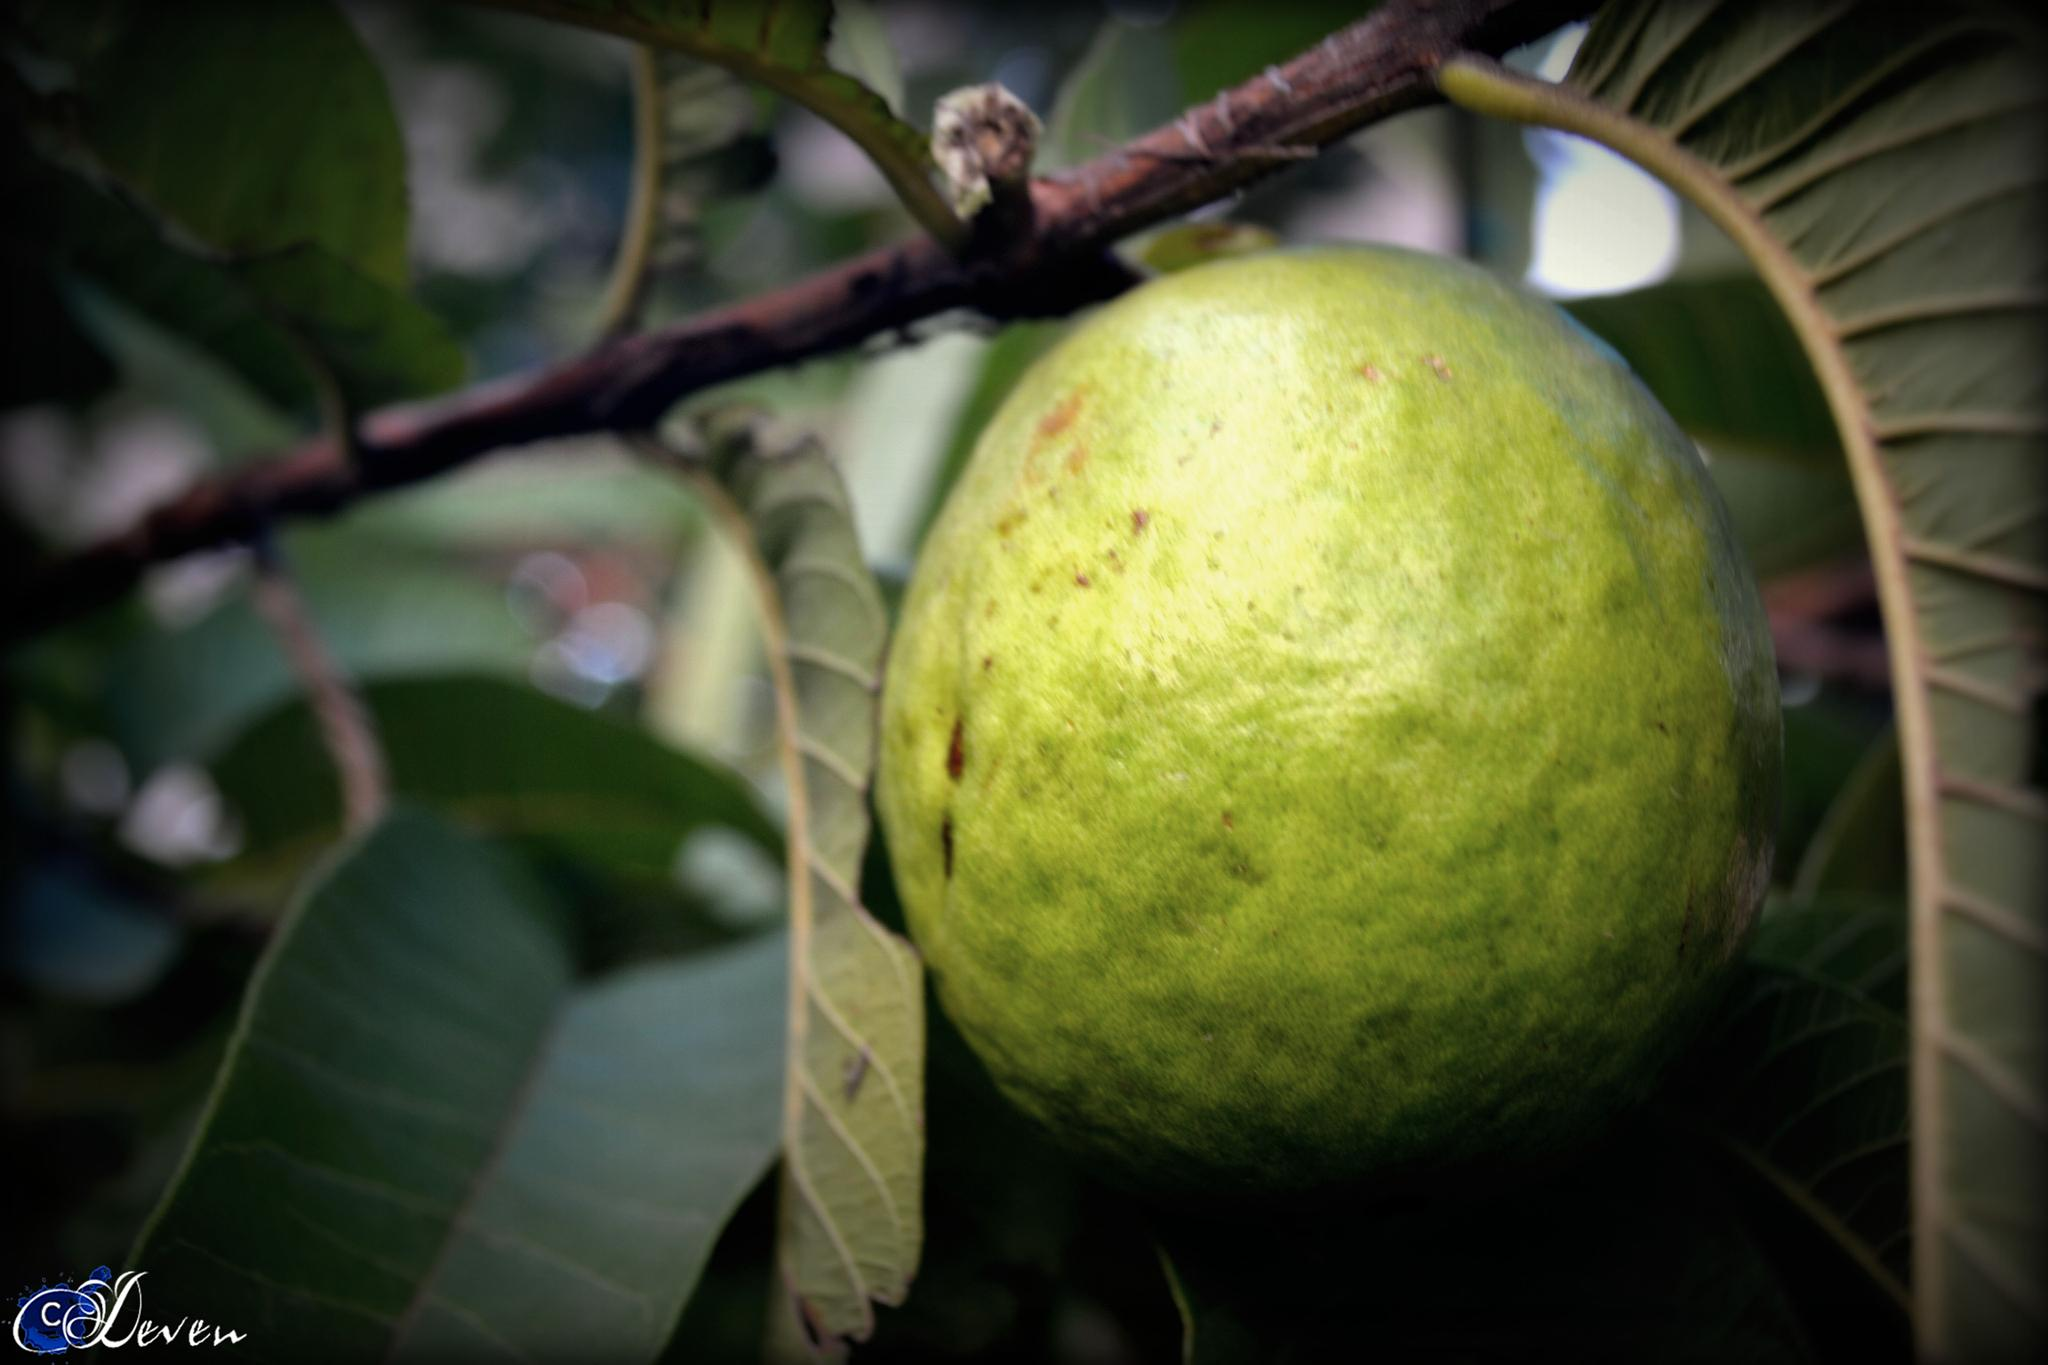 ~Guava~ by Deven's Photography